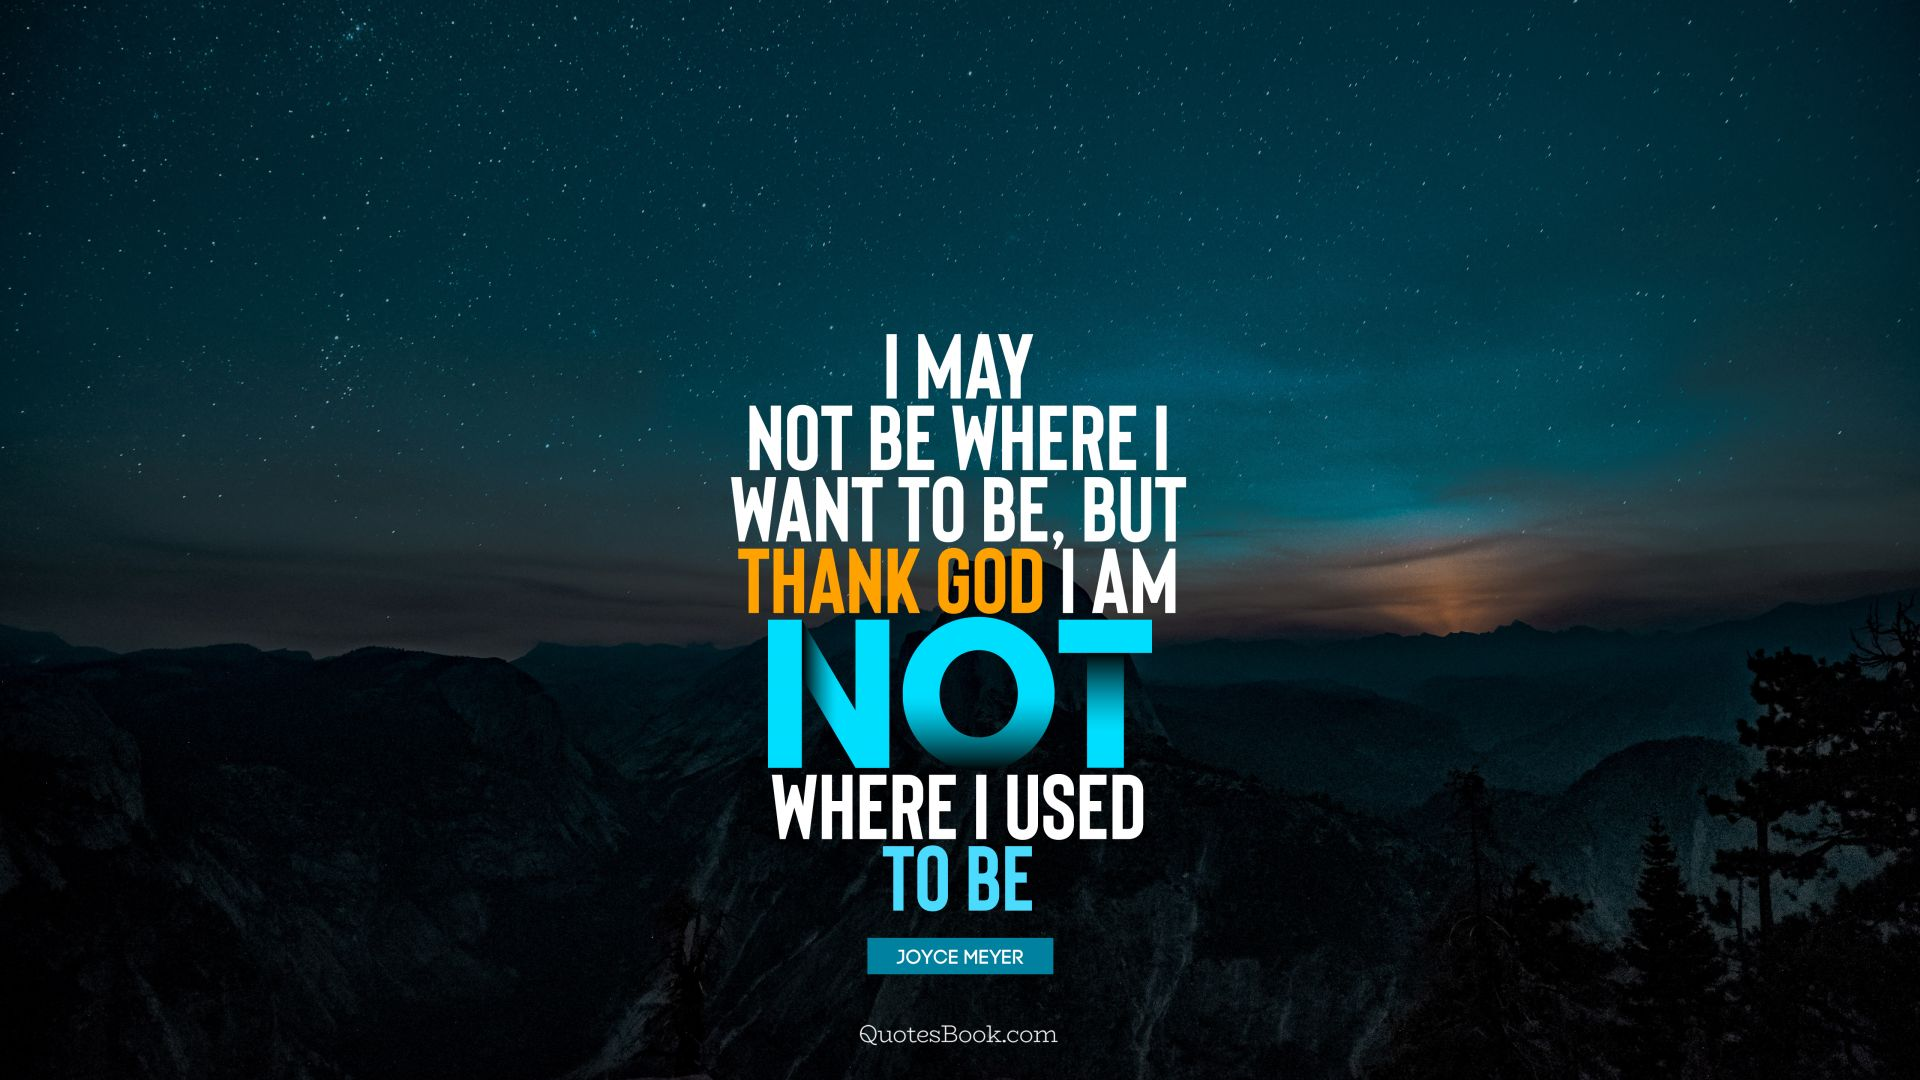 I may not be where I want to be, but thank God I am not where I used to be. - Quote by Joyce Meyer